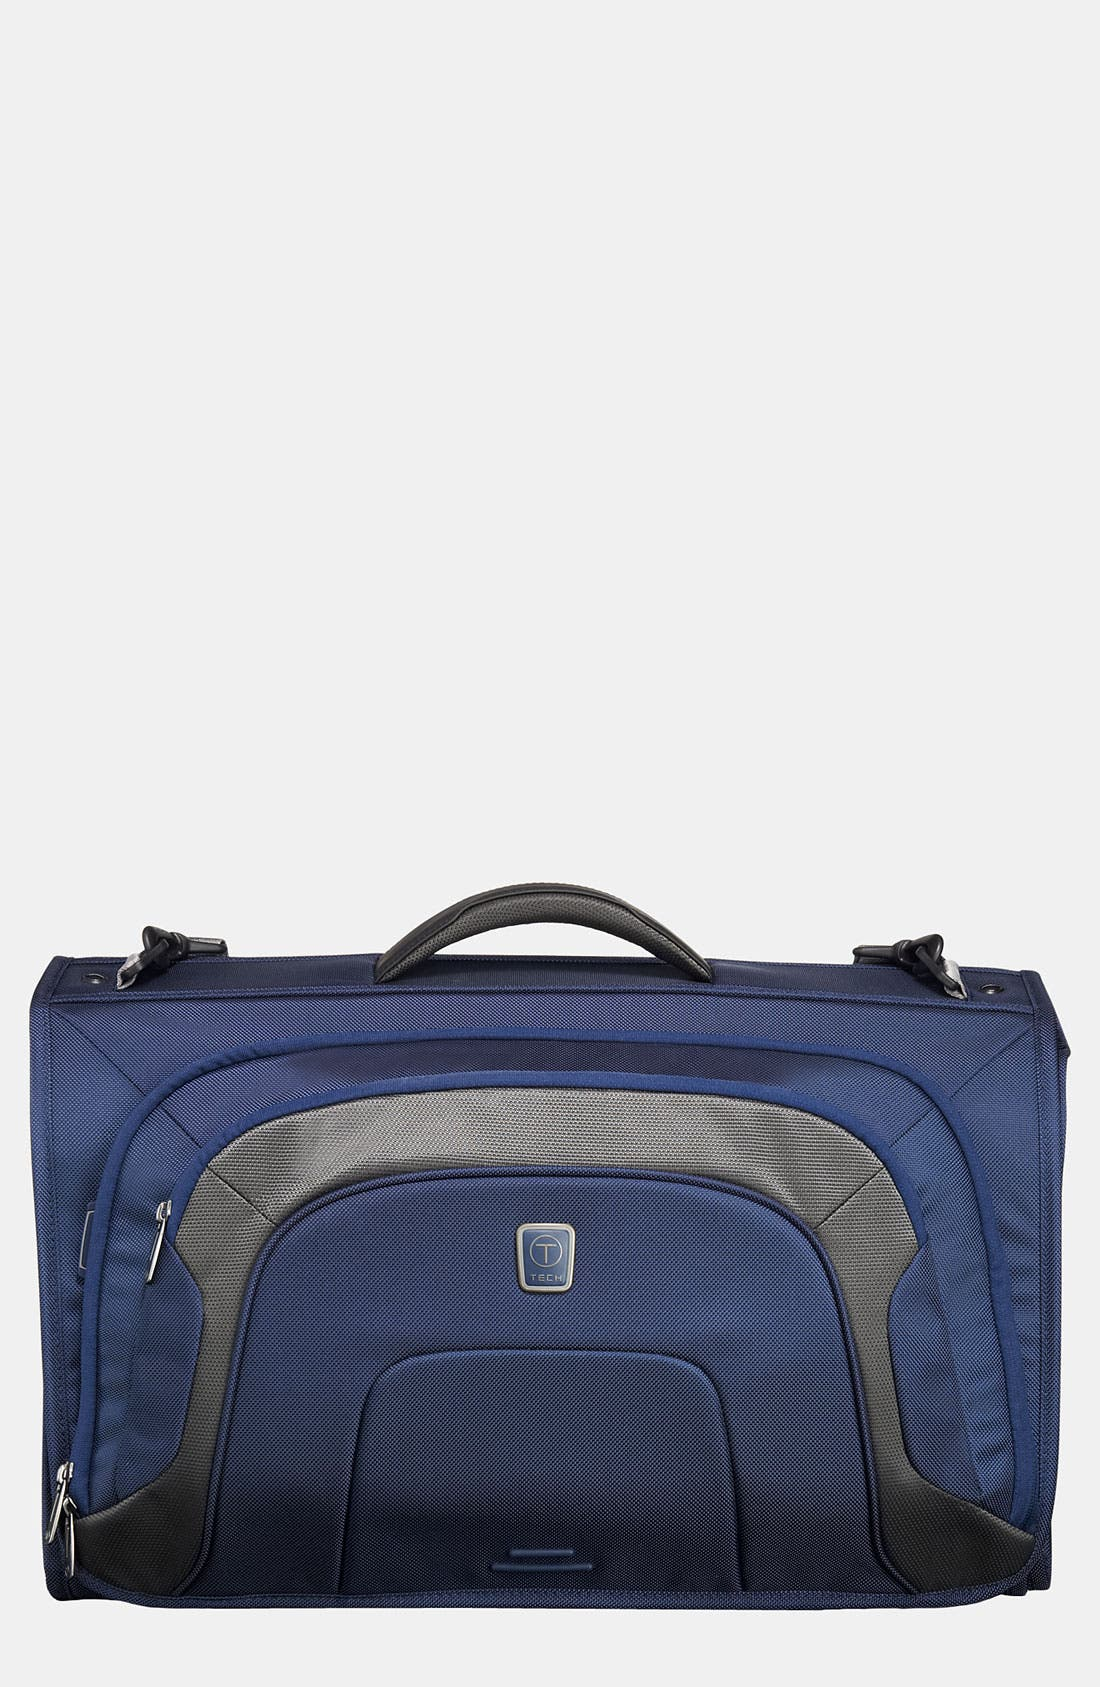 Main Image - T-Tech by Tumi 'Presidio Kobbe' Trifold Garment Bag